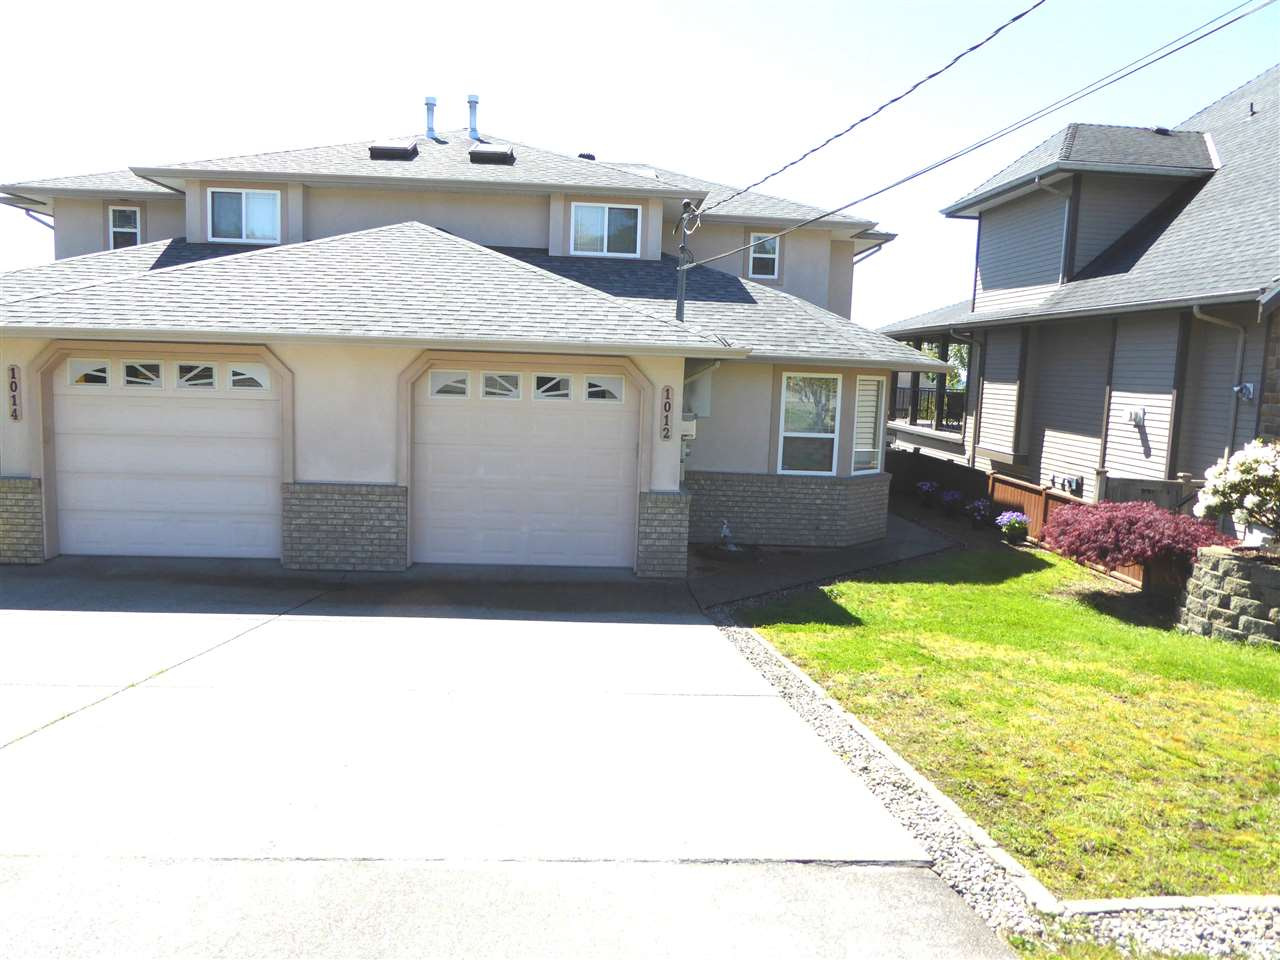 Main Photo: 1012 WALLS Avenue in Coquitlam: Maillardville House 1/2 Duplex for sale : MLS® # R2162423